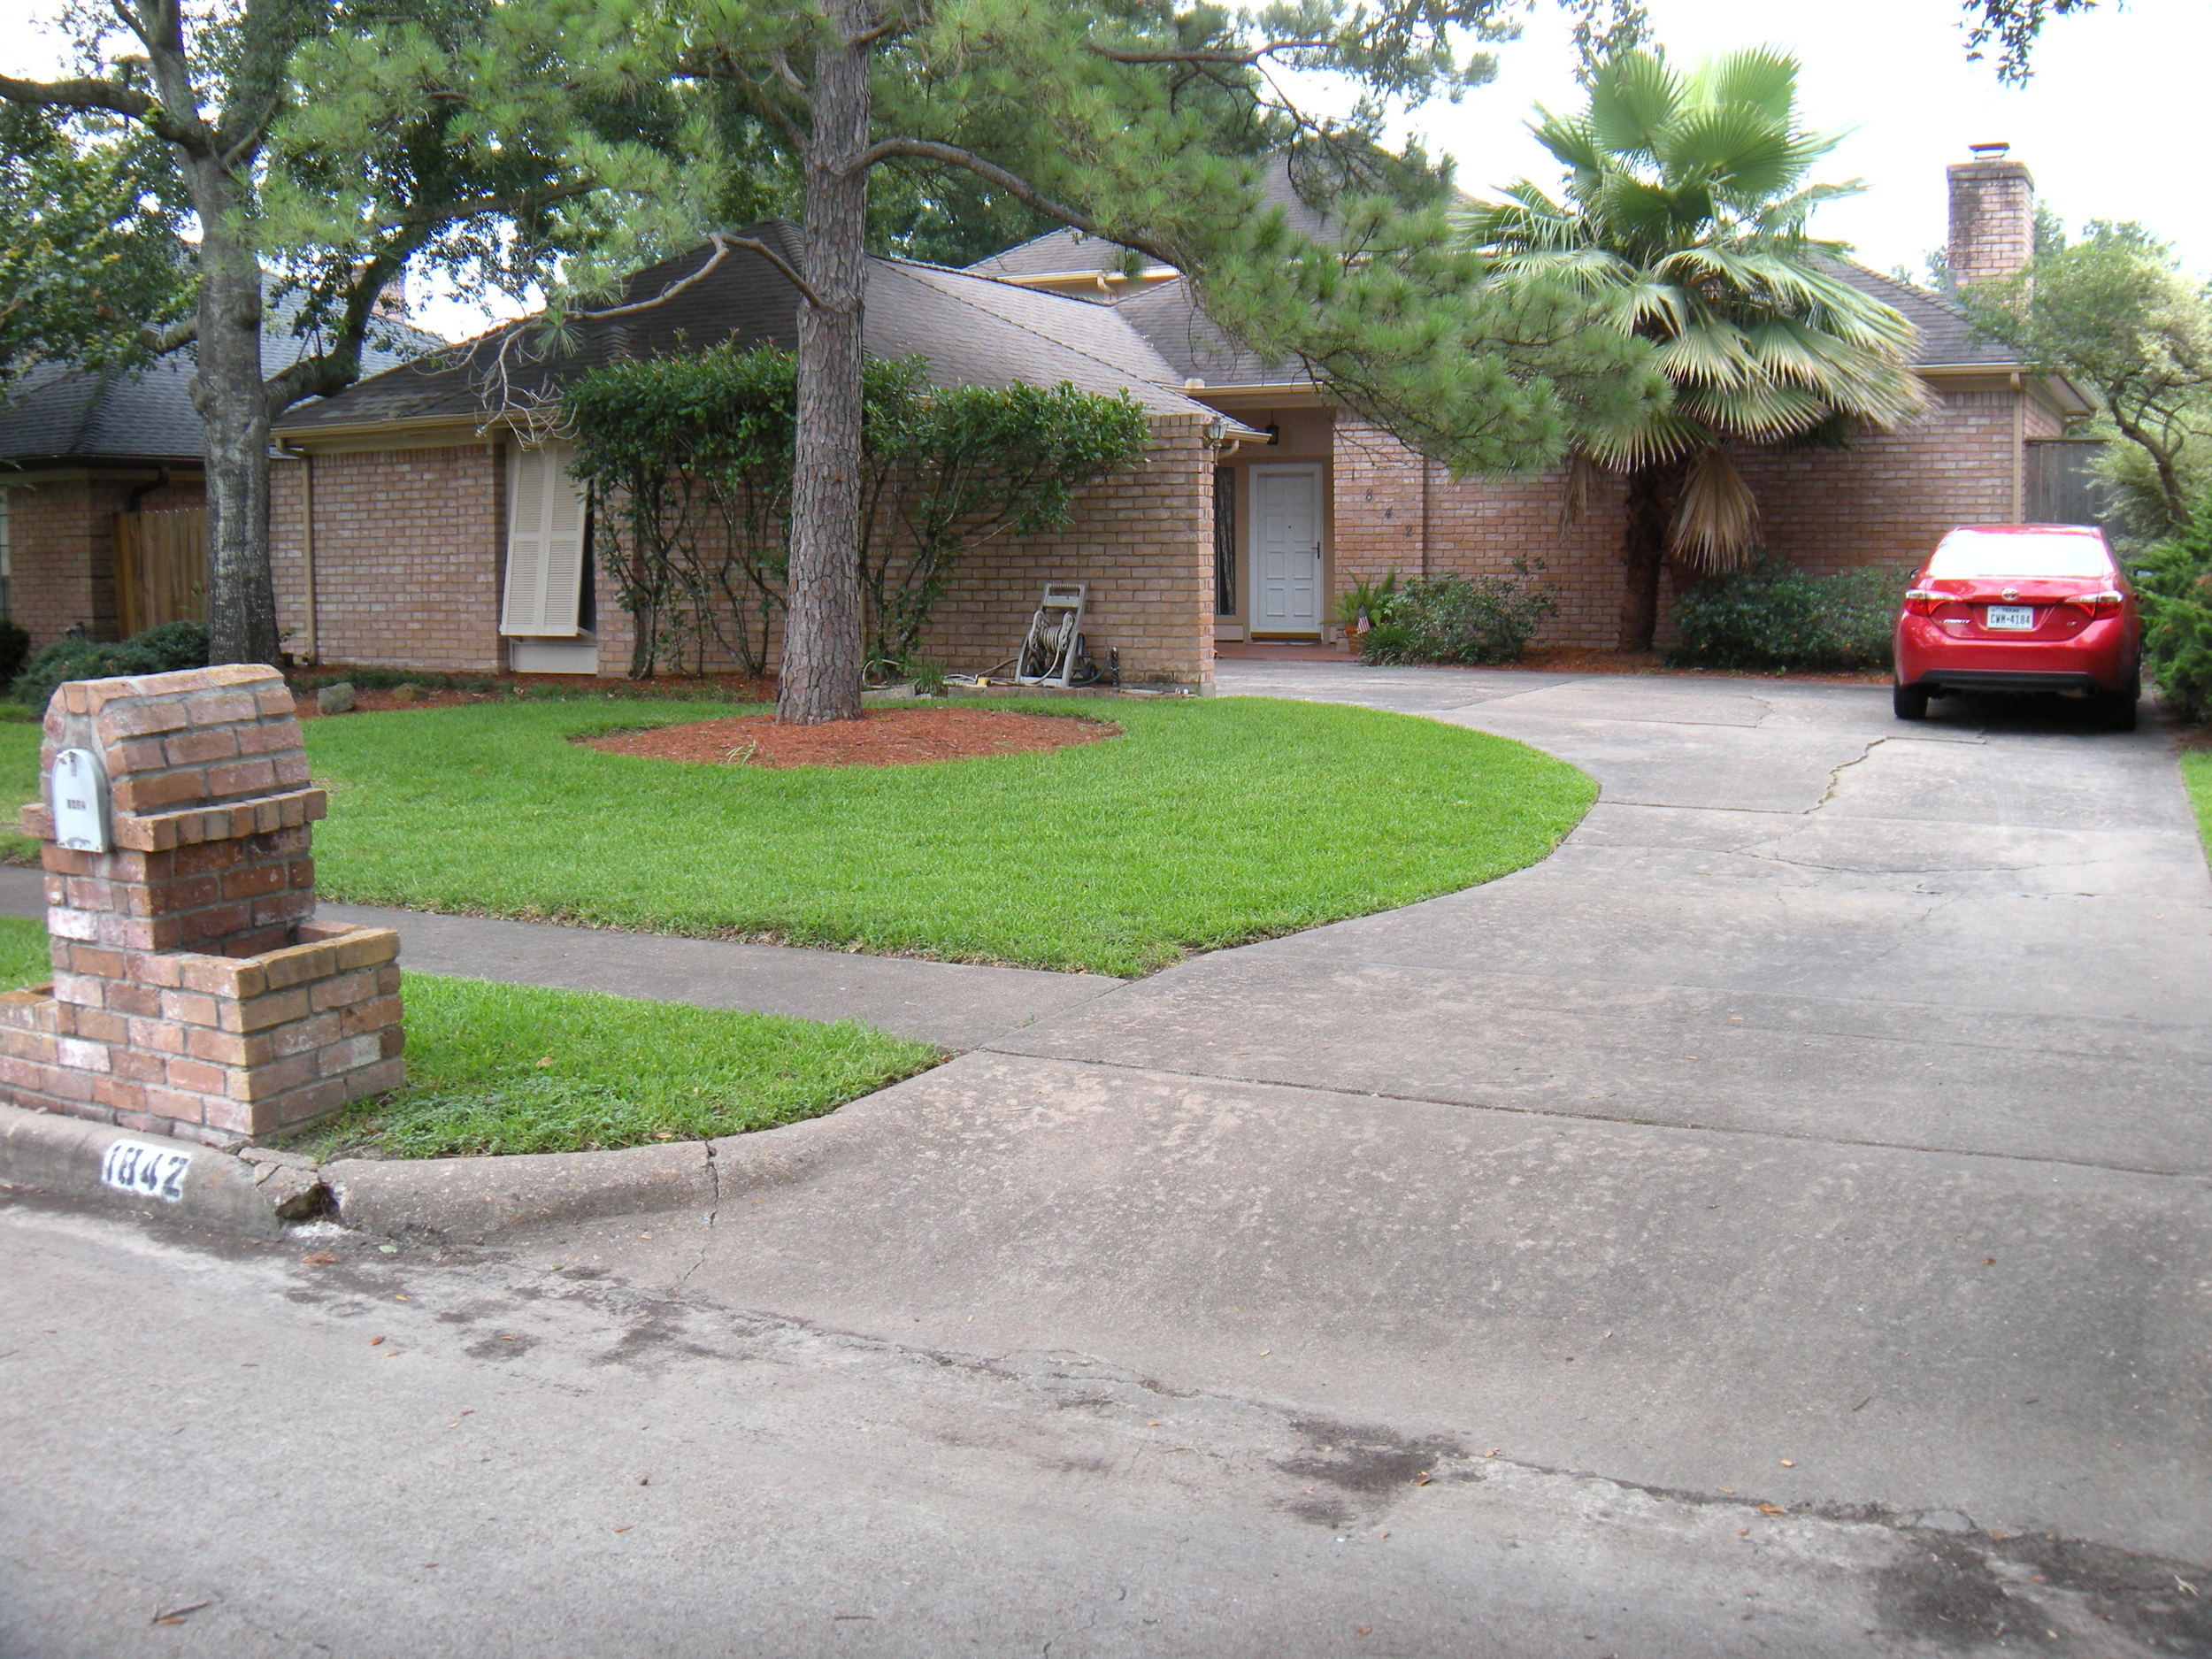 Trina's house. The corolla in the driveway is my rental car. The curb doesn't look like it's at prohibitive, but it obviously is. I've clunked over it every time I've reversed out of there.